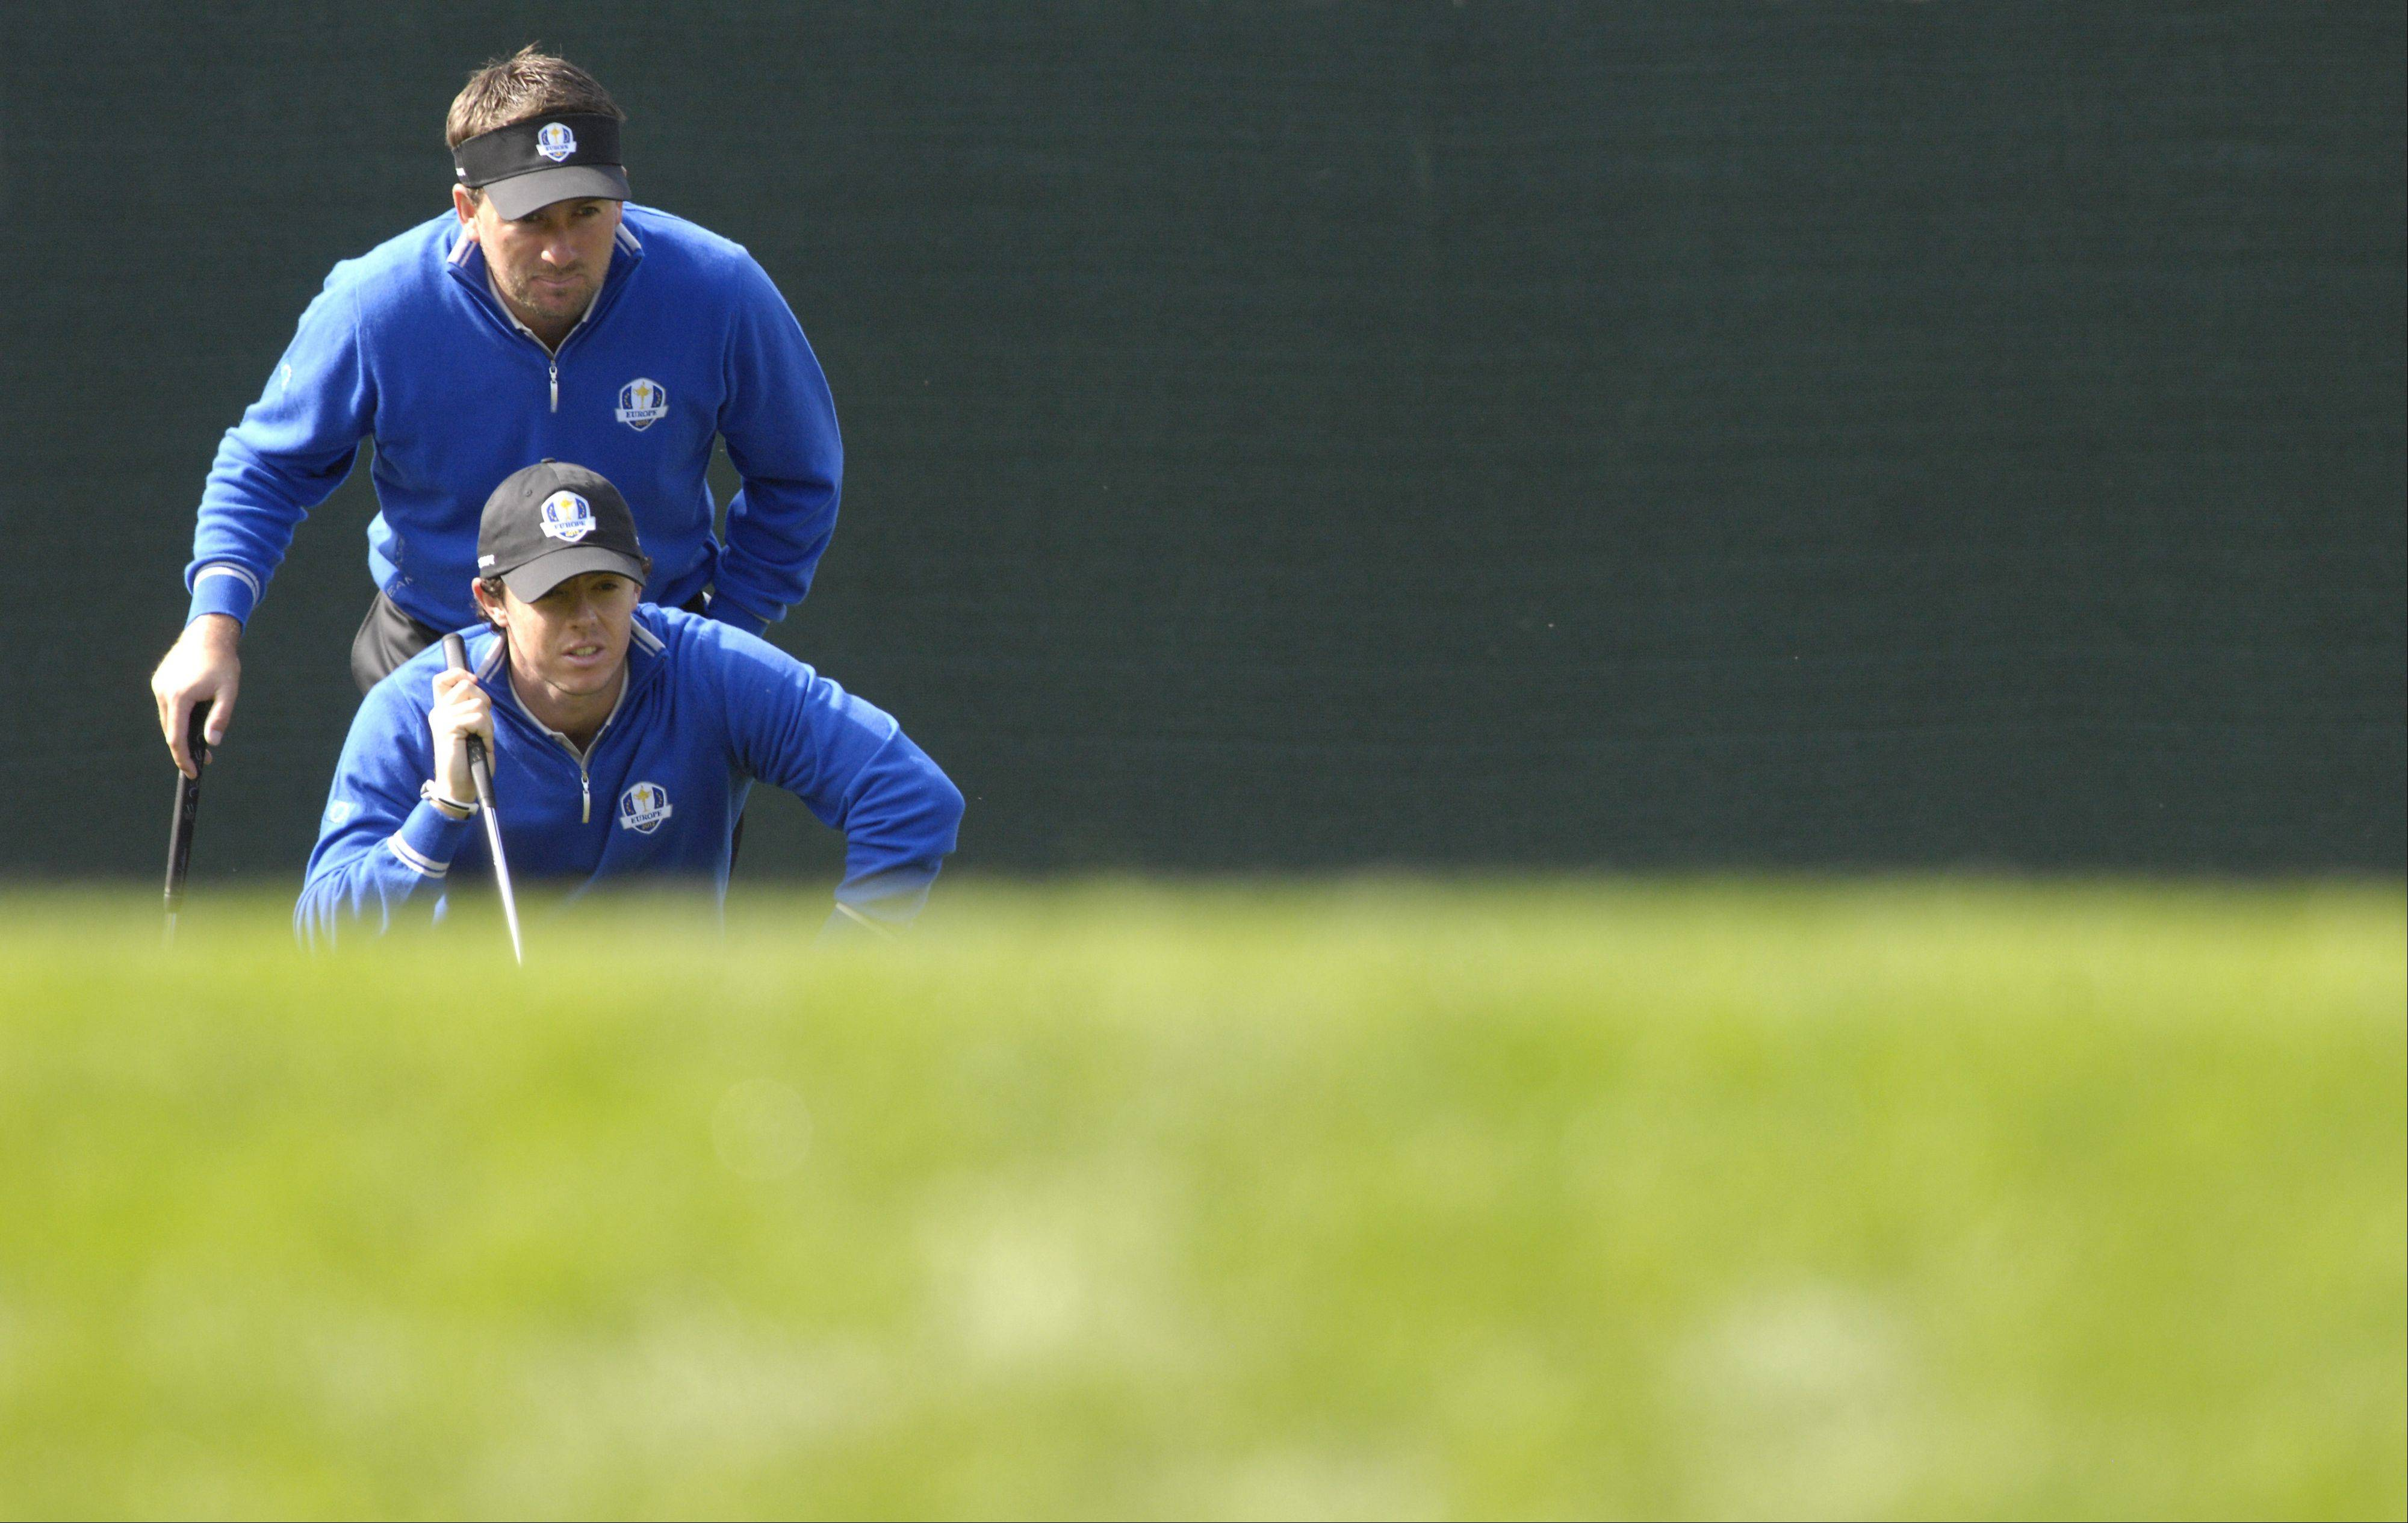 Graeme McDowell and Rory McIlroy of Team Europe line up a shot on the third green during practice Wednesday for the Ryder Cup. McIlroy, the No. 1 player in the world, finished 1-1-2 in his Ryder Cup debut in 2010.